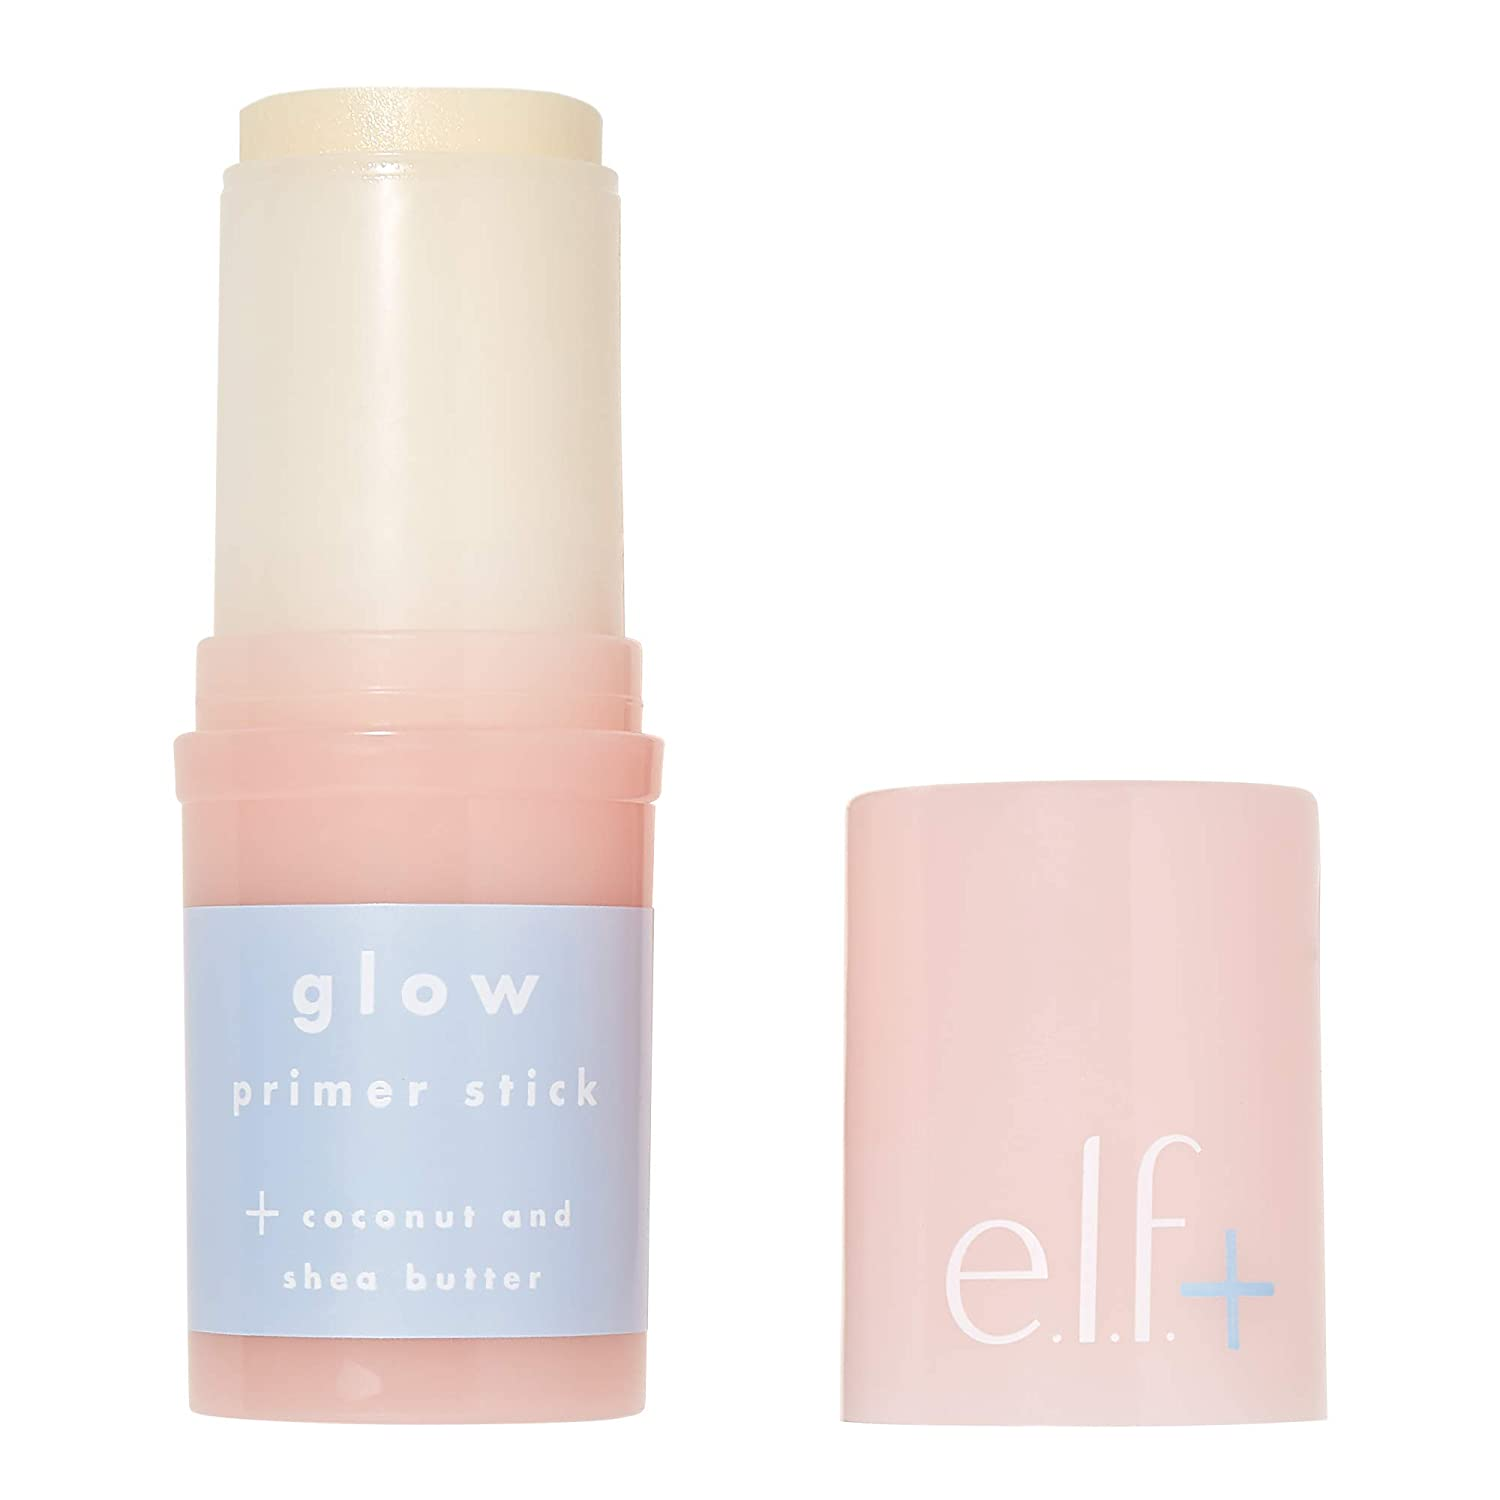 e.l.f.Elf+ Glow Primer Stick Lightweight, Hydrating, Luminizing Primes, Preps, Smooths, Nourishes Infused with Coconut and Shea Butter, Shimmer 0.53 Oz